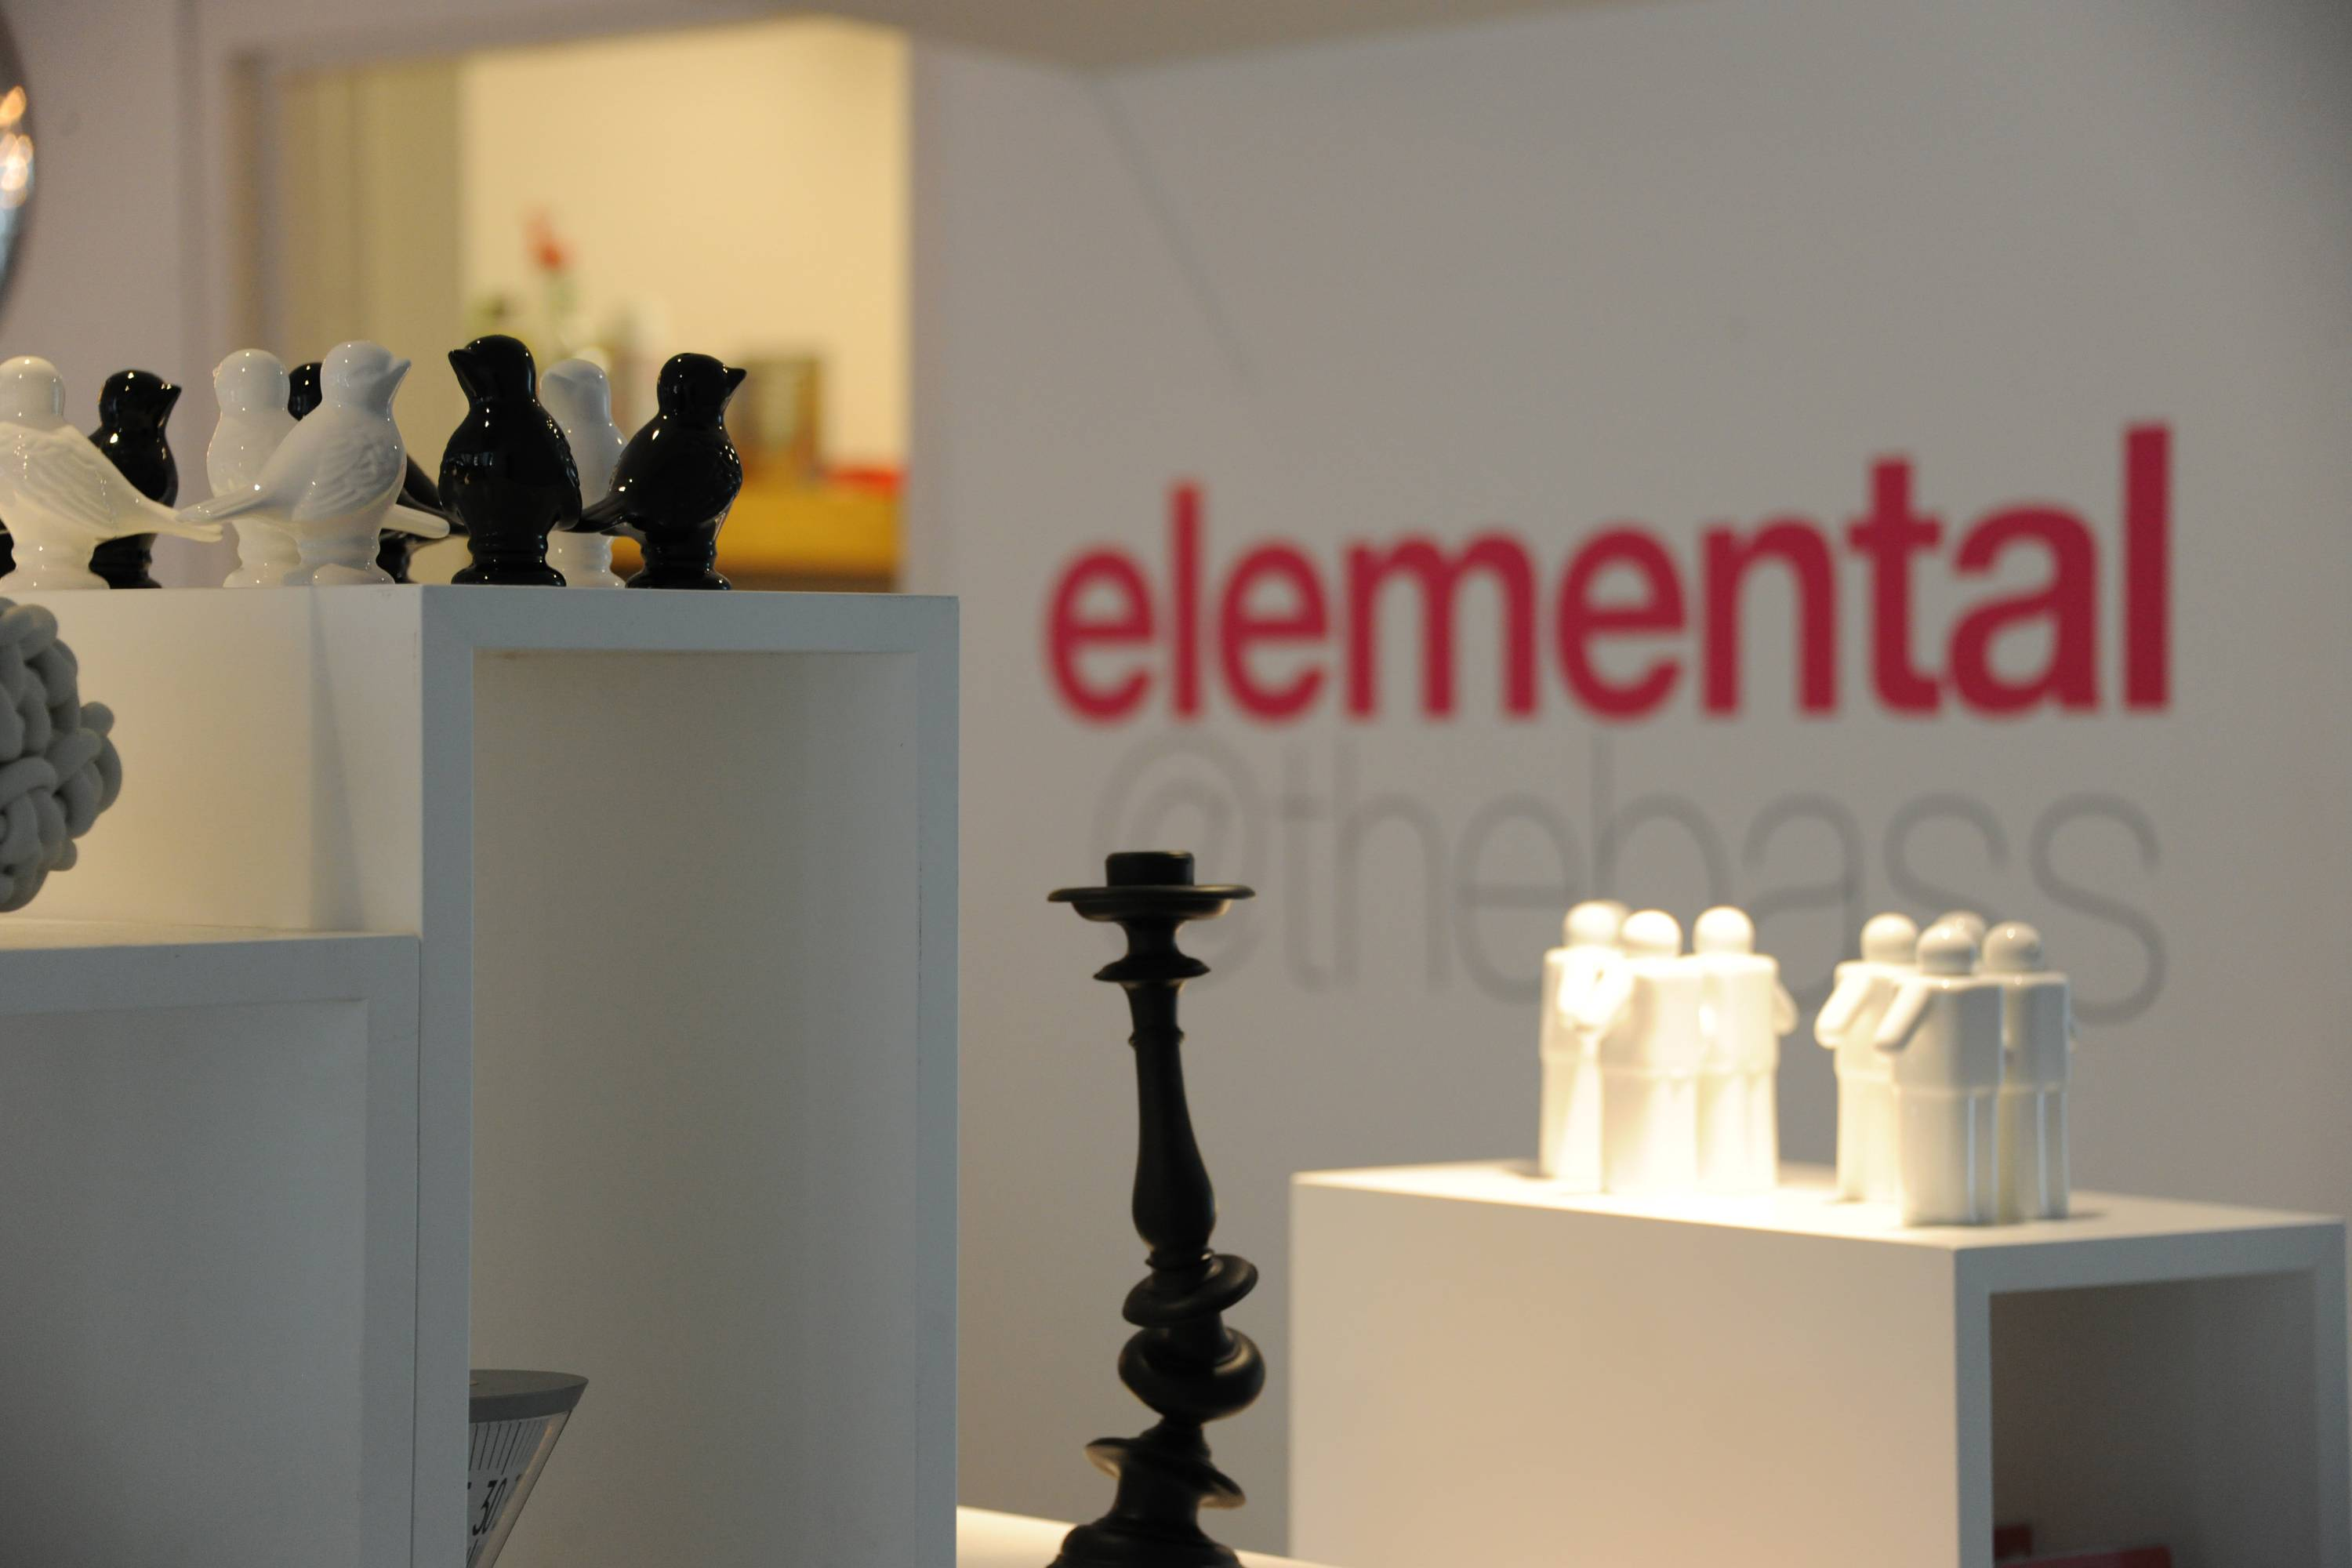 Contemporary Design Store elemental Opens at Bass Museum